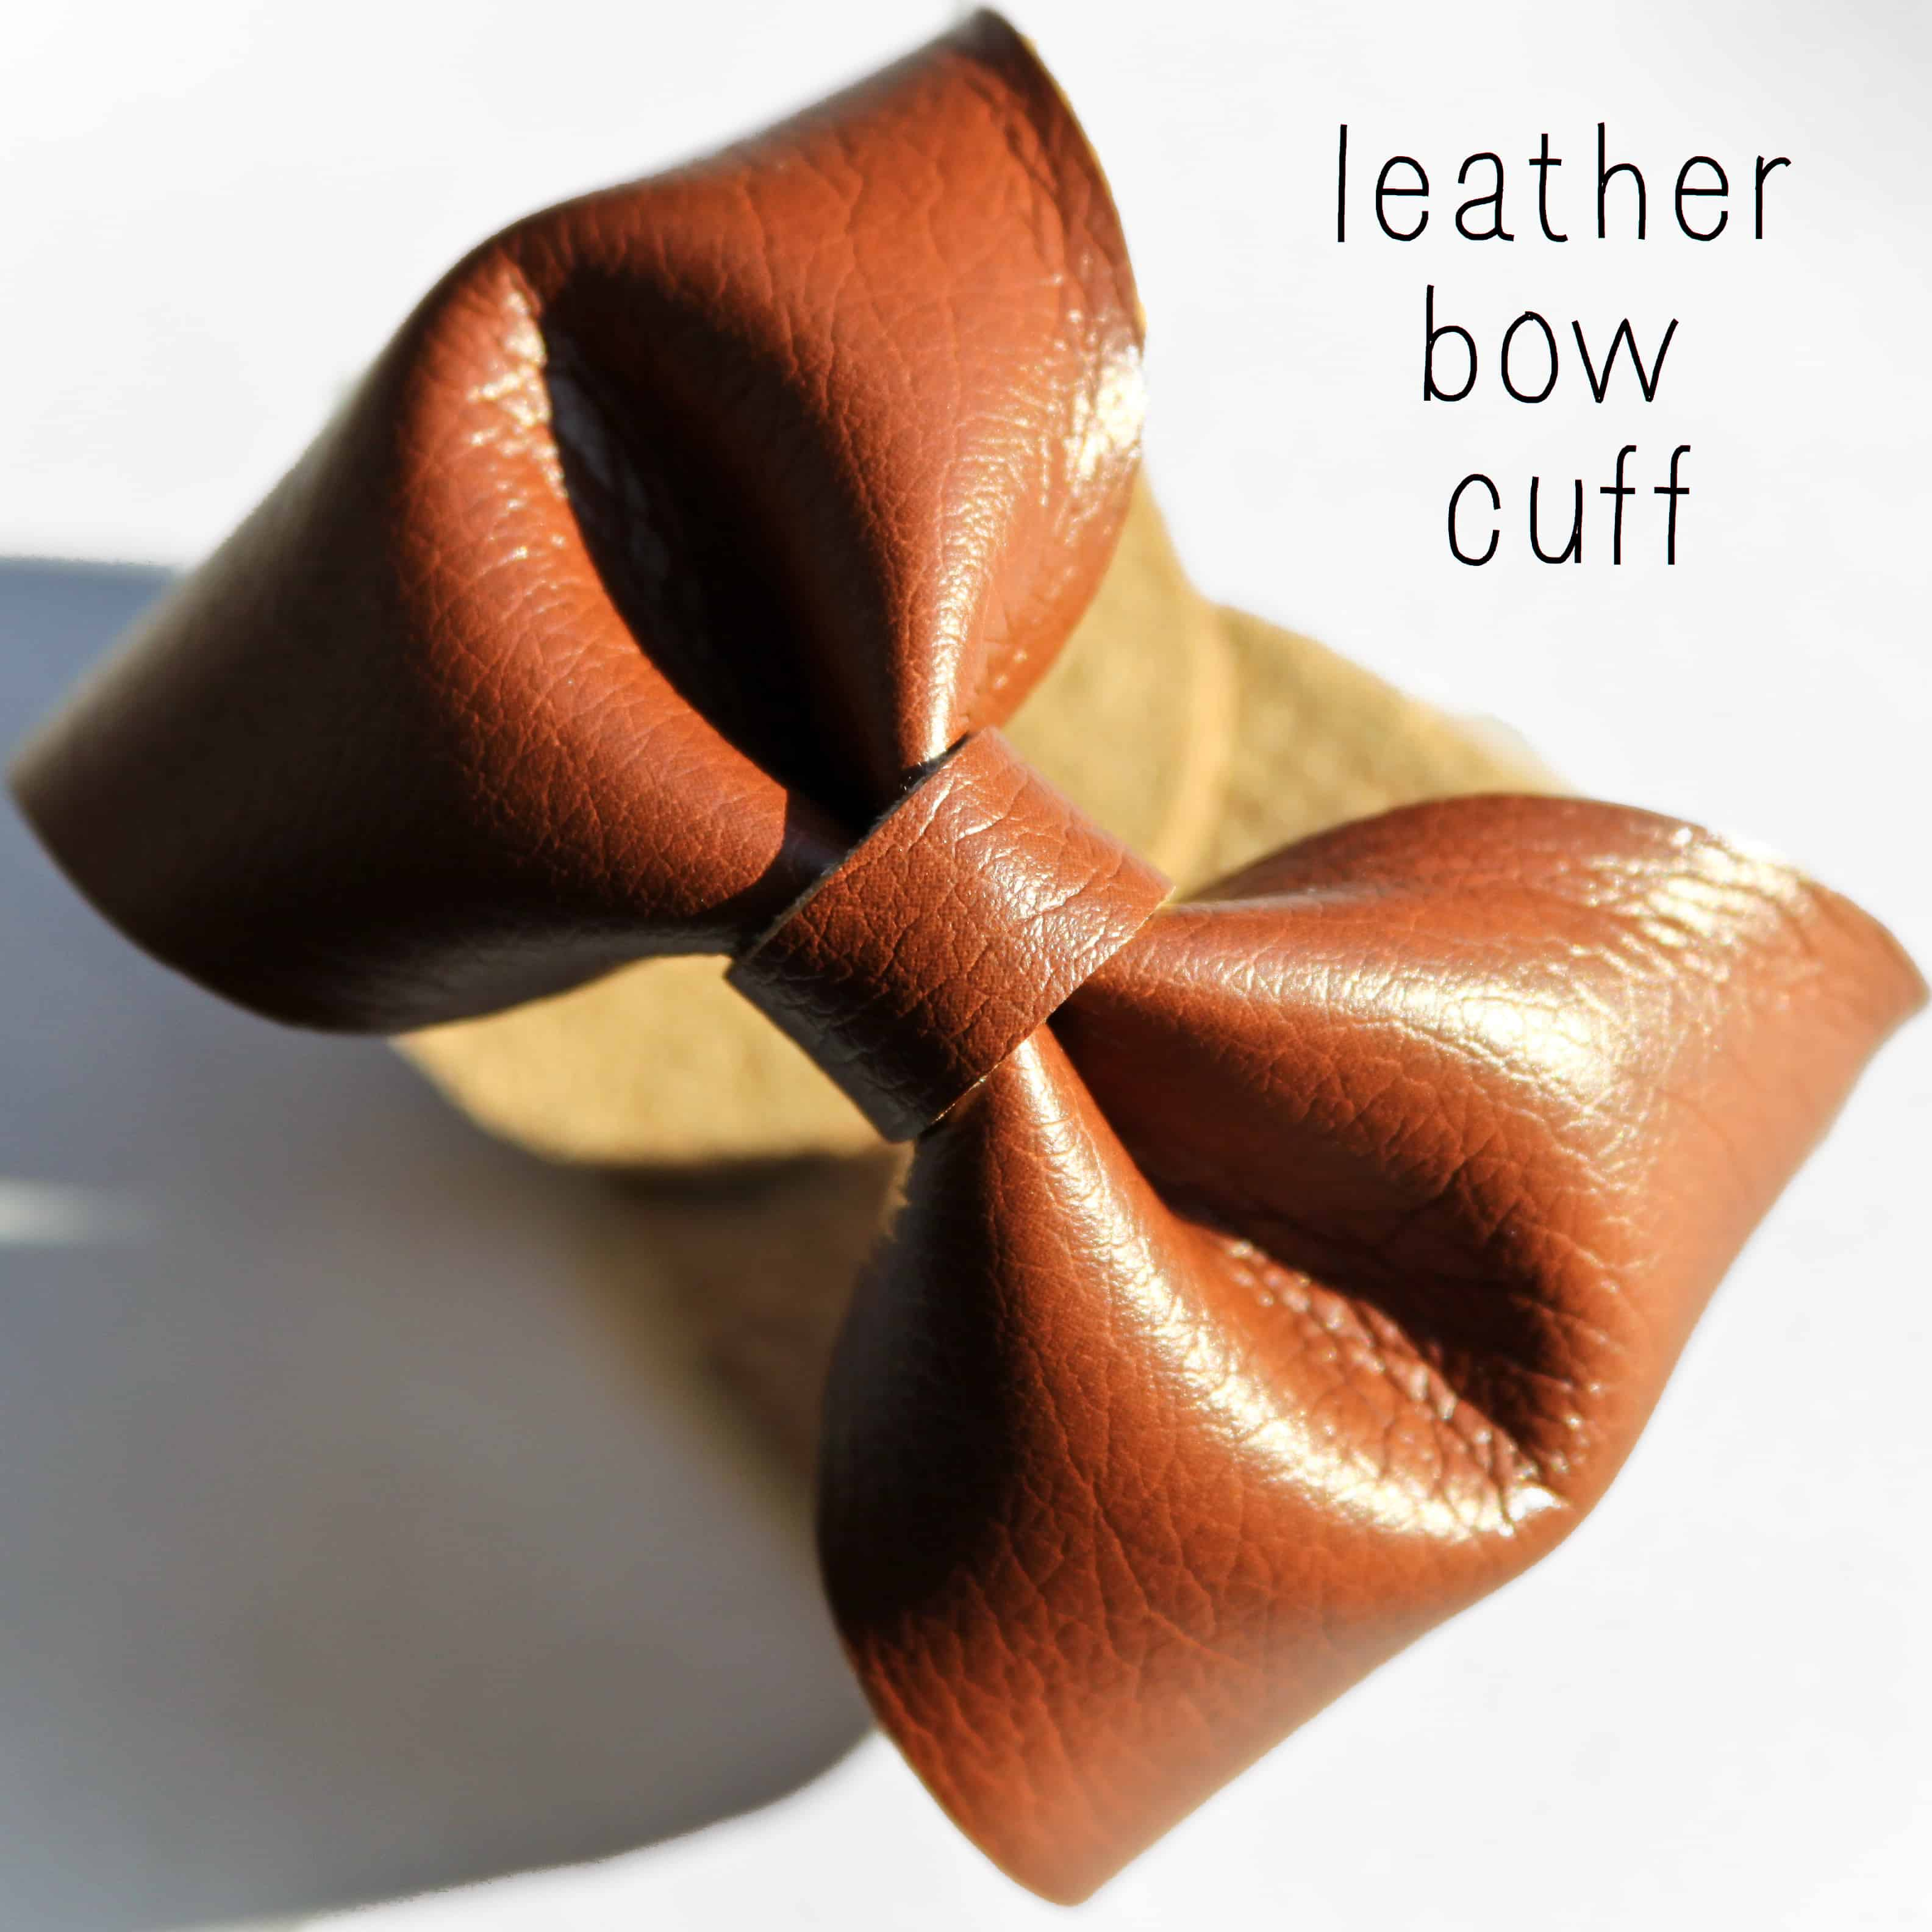 Leather bow cuff